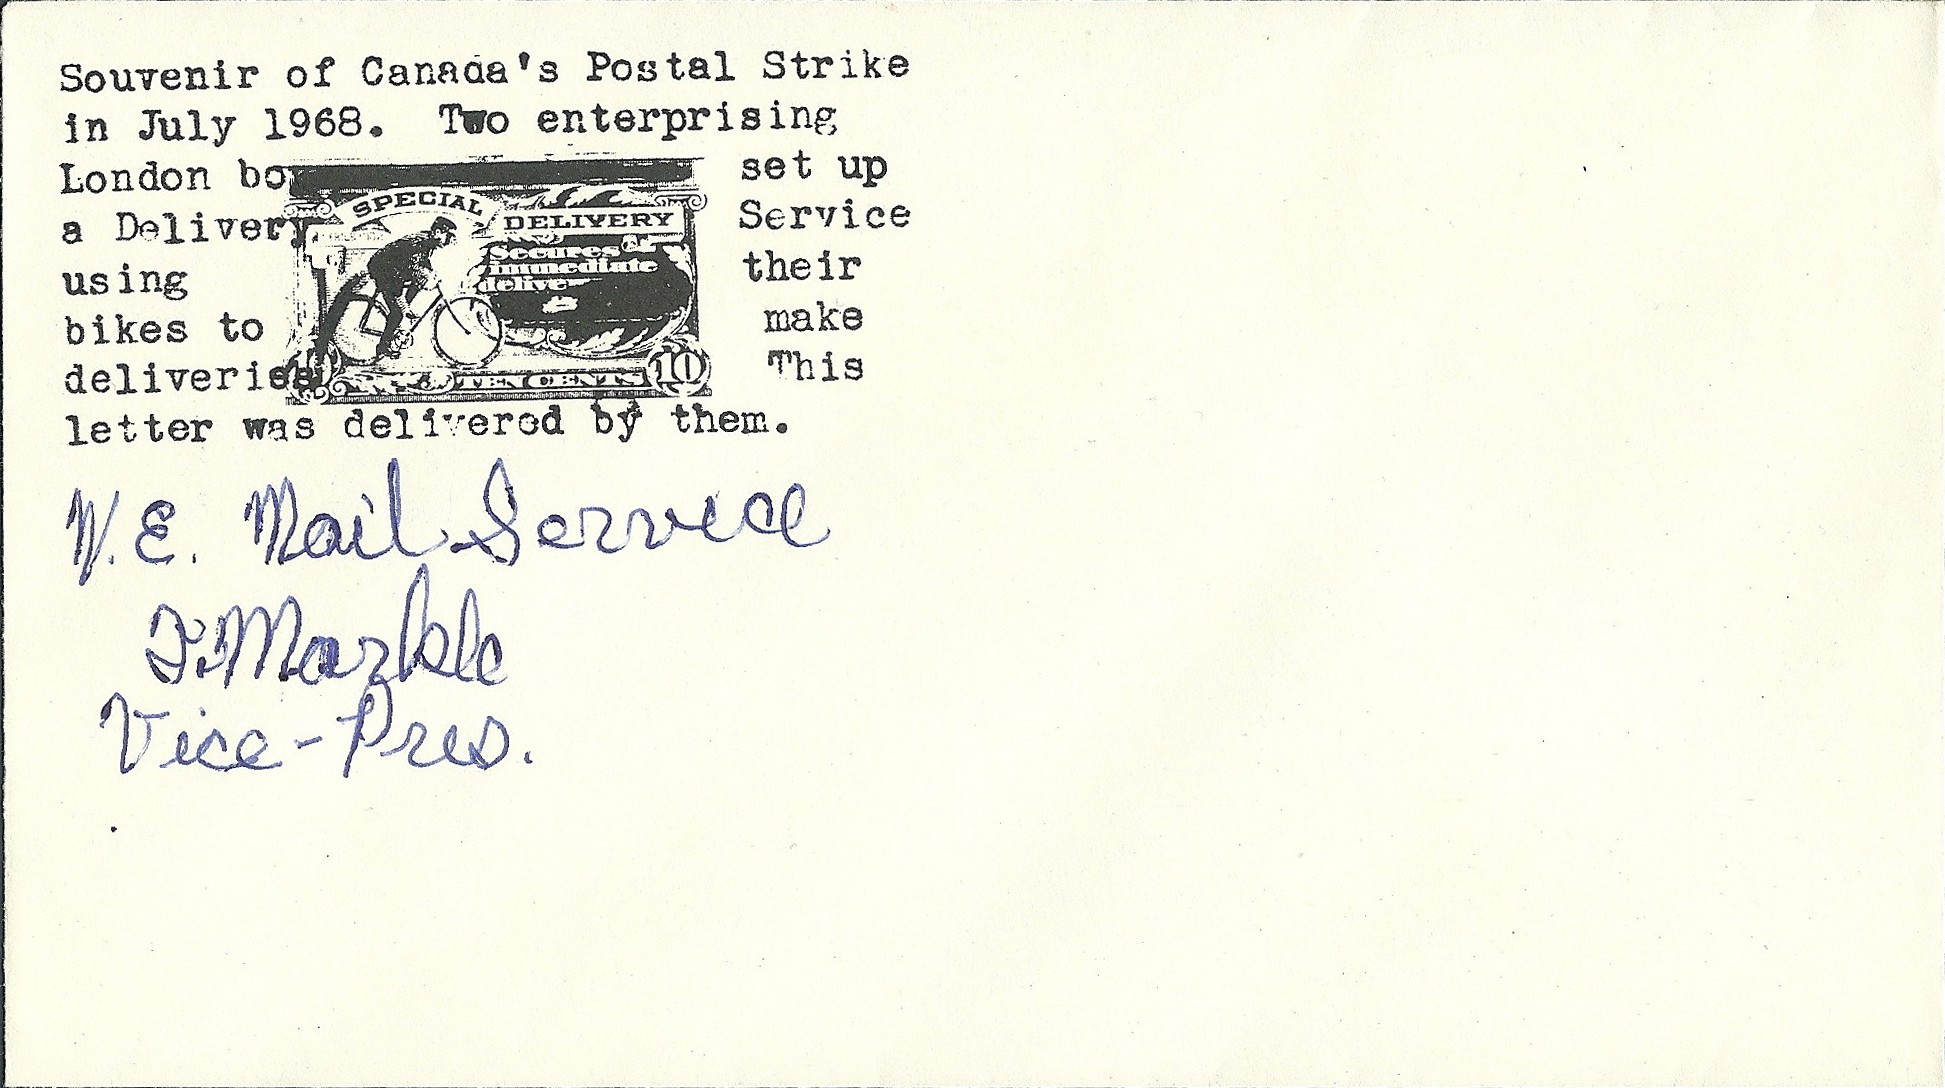 W-E-Mail-Service-London-Canada-Ontario-post-strike-1968-envelope